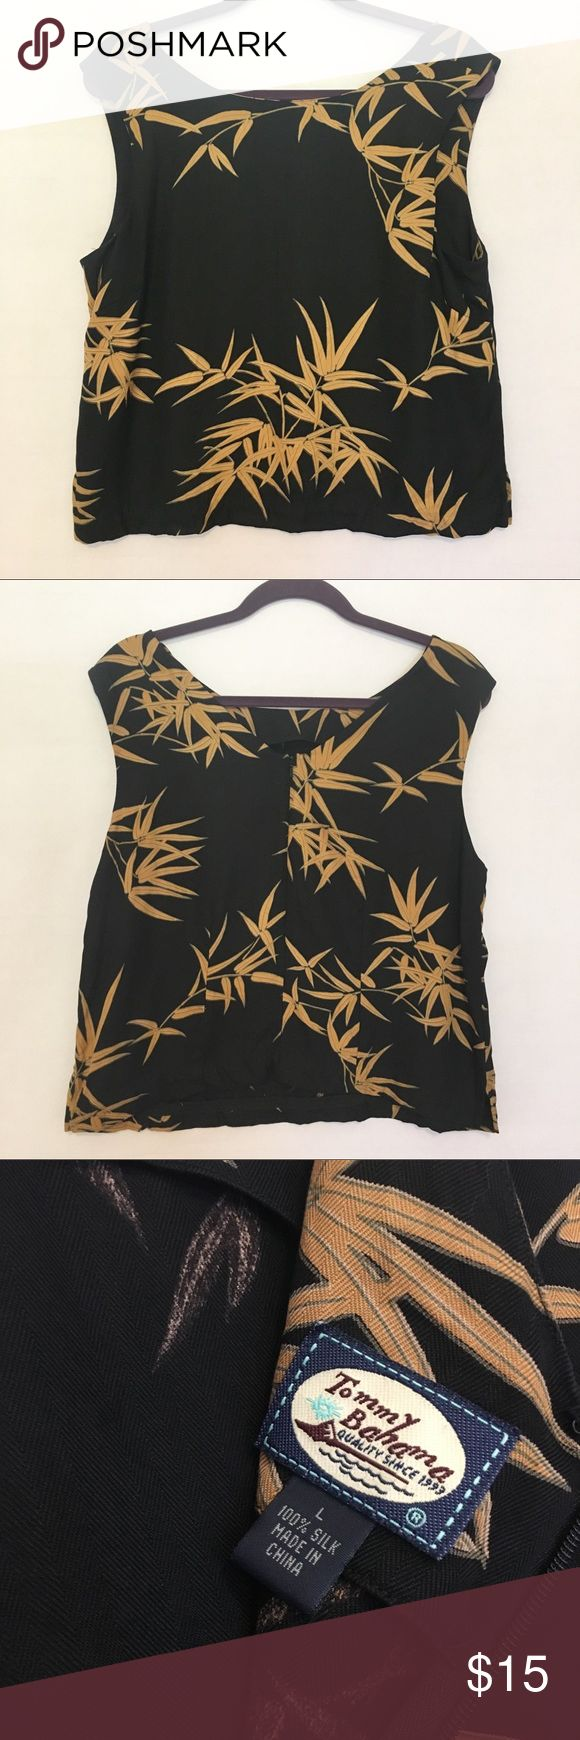 "Tommy Bahama silk leaf print blouse sz large Tommy Bahama Women's 100% silk Sleeveless blouse. Has a wide neckline and back zip up closure. Black with gold tropical leaf print. 20"" armpit to armpit and 22"" shoulder to hem. EUC. Tommy Bahama Tops Blouses"